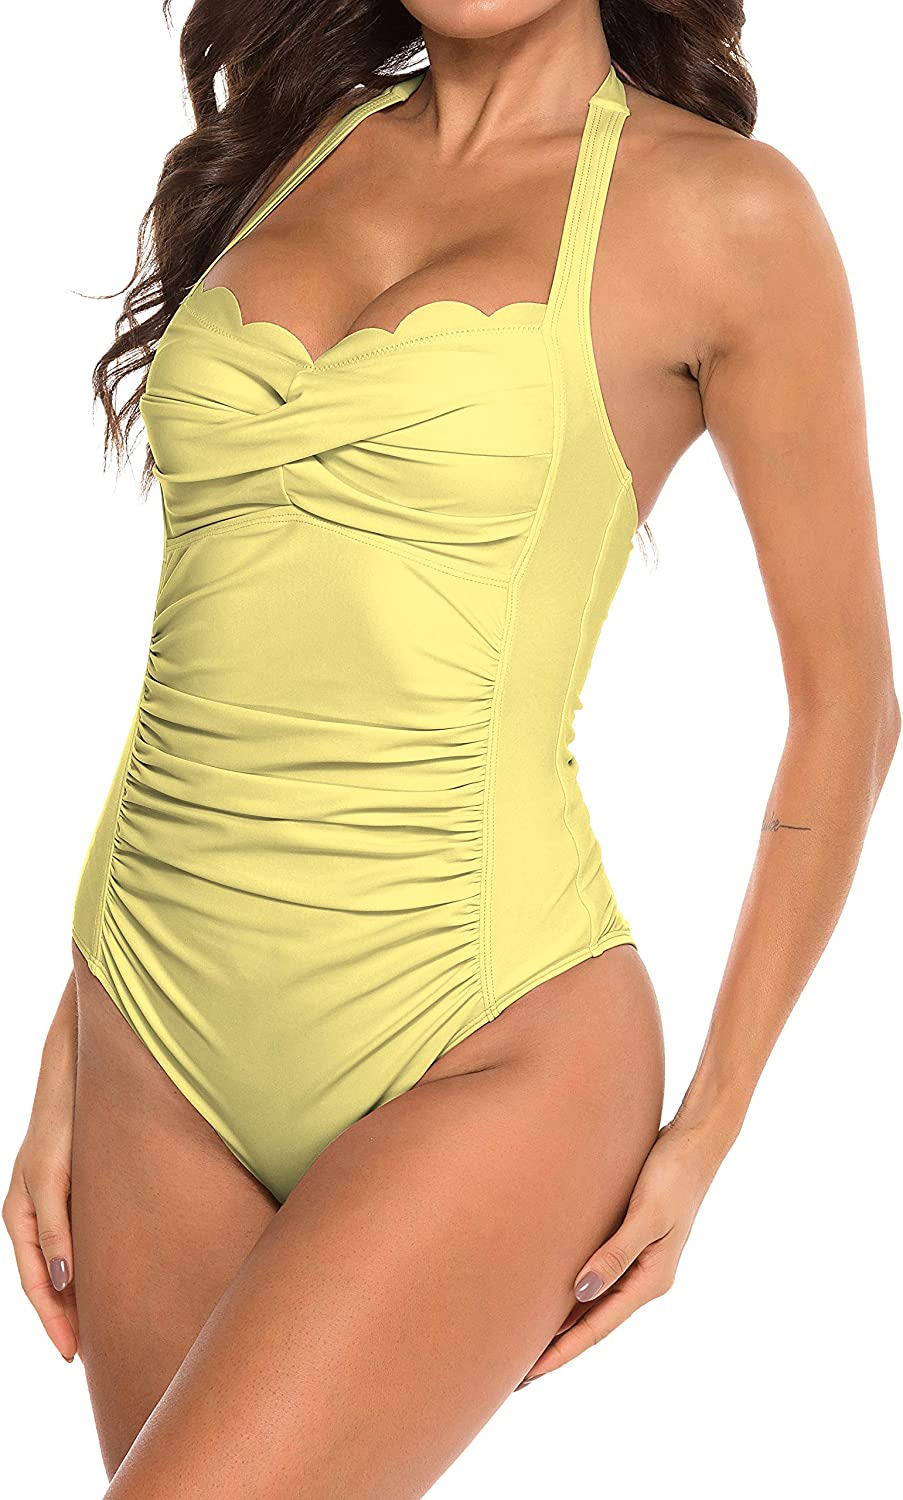 B2prity Womens One Piece Swimsuit Tummy Control Bathing Suit Halter Neck Ruched Swimwear